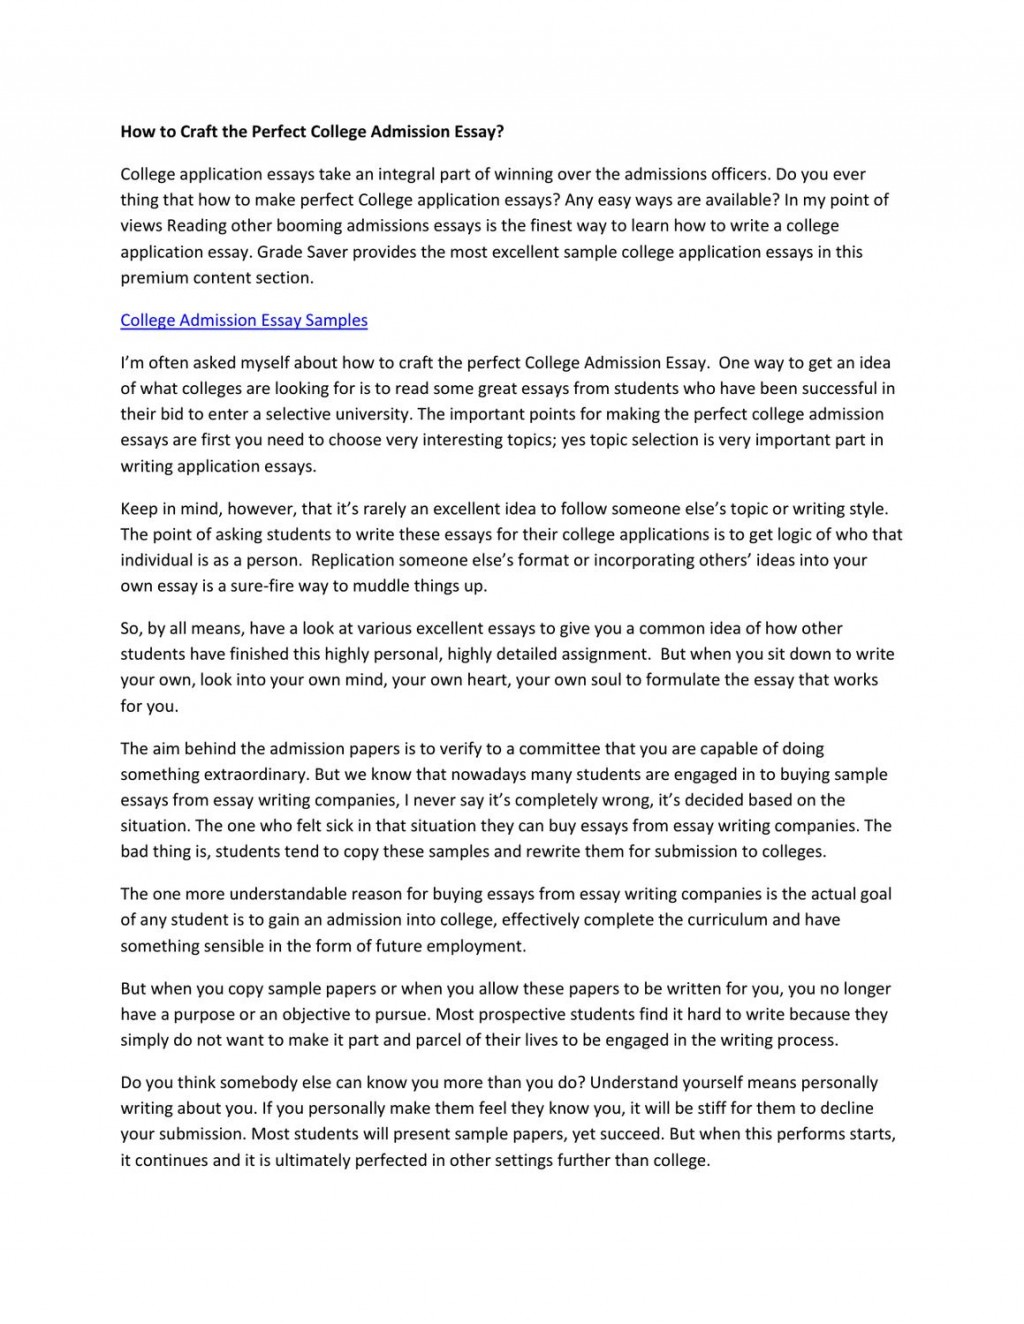 023 College Admission Essay Example How To Craft Theerfect Application By Jessey Broad Amazing Essays Rare Prompts Format Examples Ivy League Large